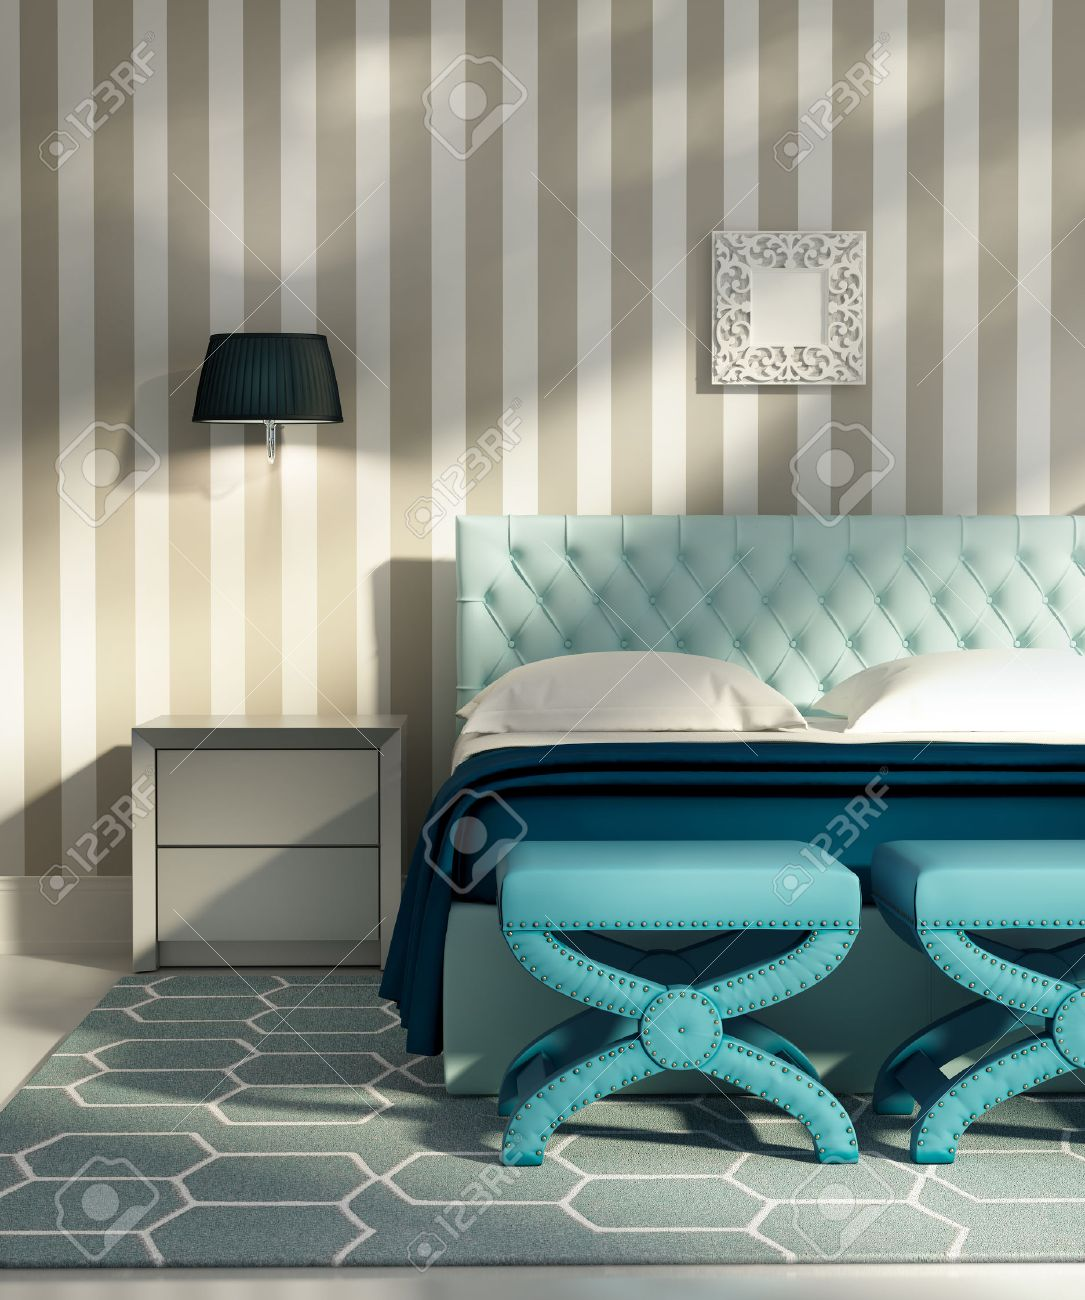 Luxury Bedroom Wallpaper Contemporary Elegant Luxury Bedroom With Blue Stools And A Striped